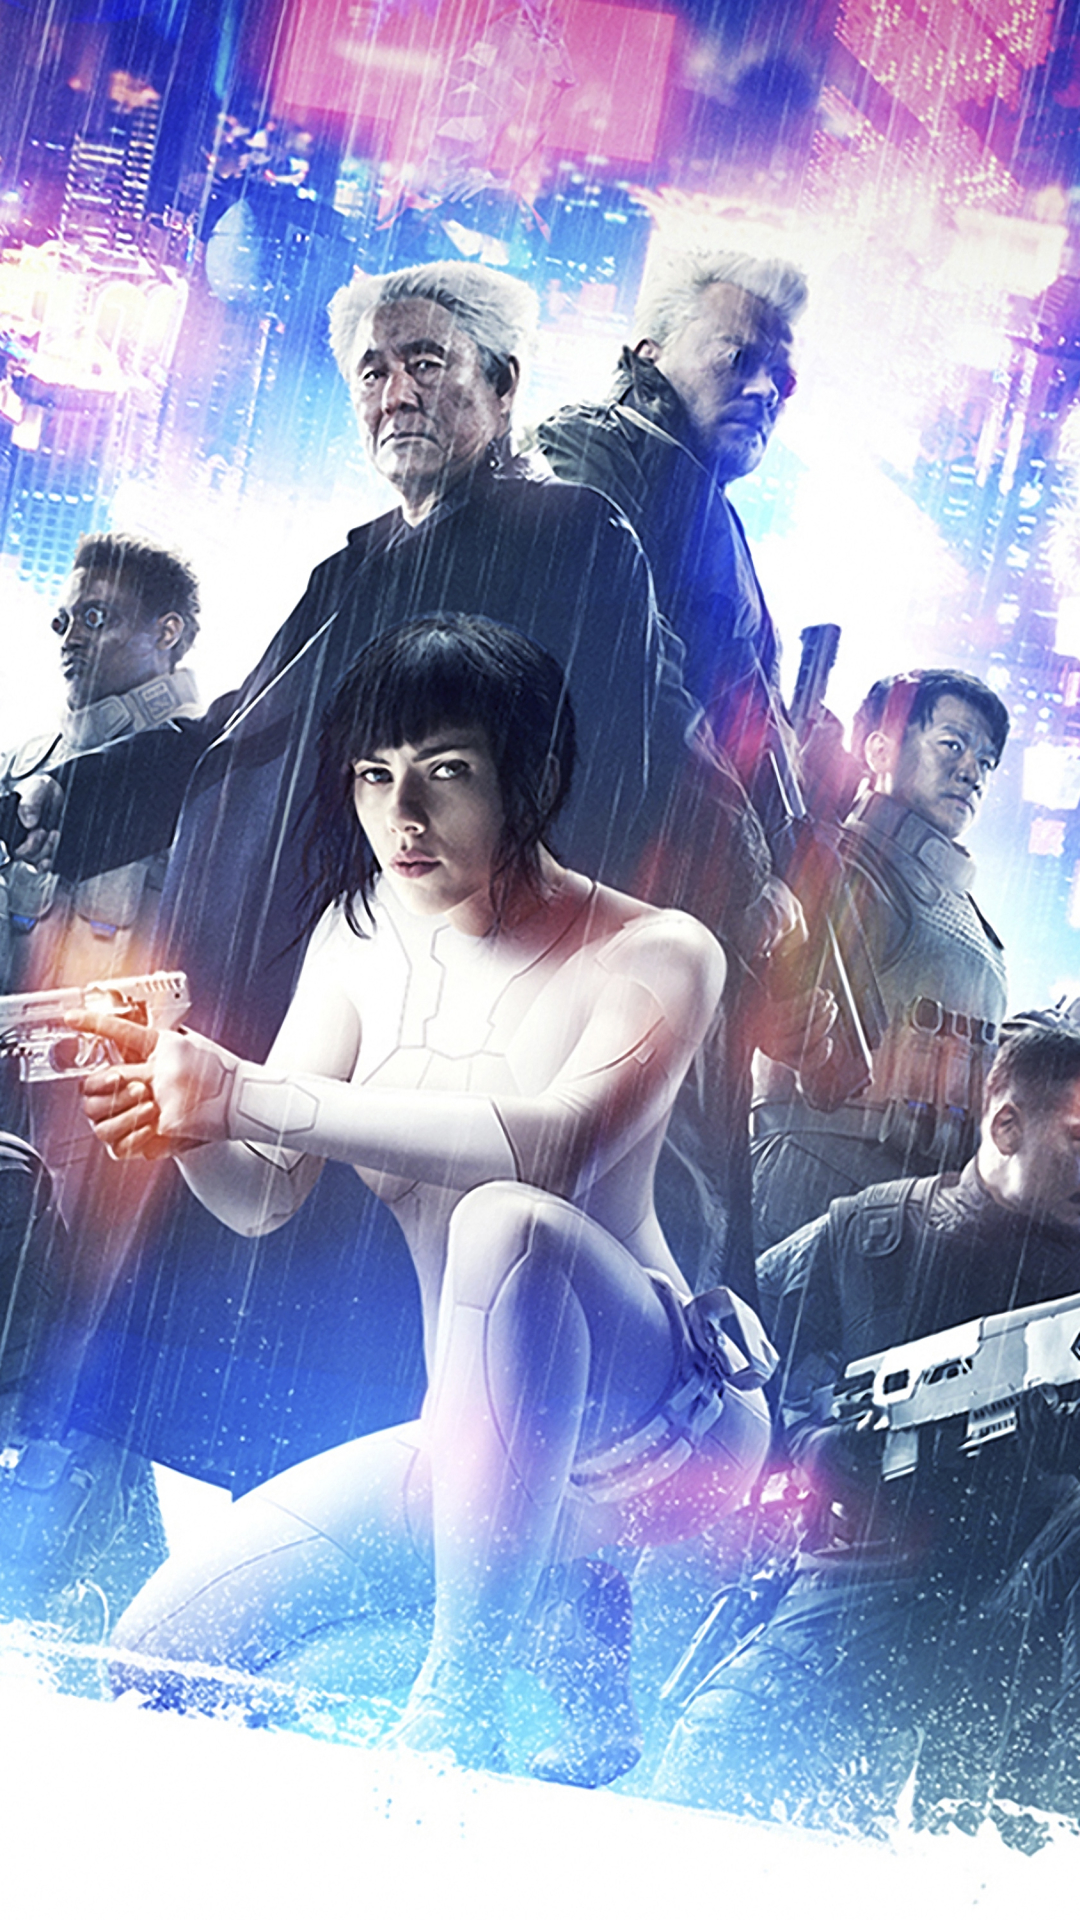 Movie Ghost In The Shell 2017 1080x1920 Wallpaper Id 686347